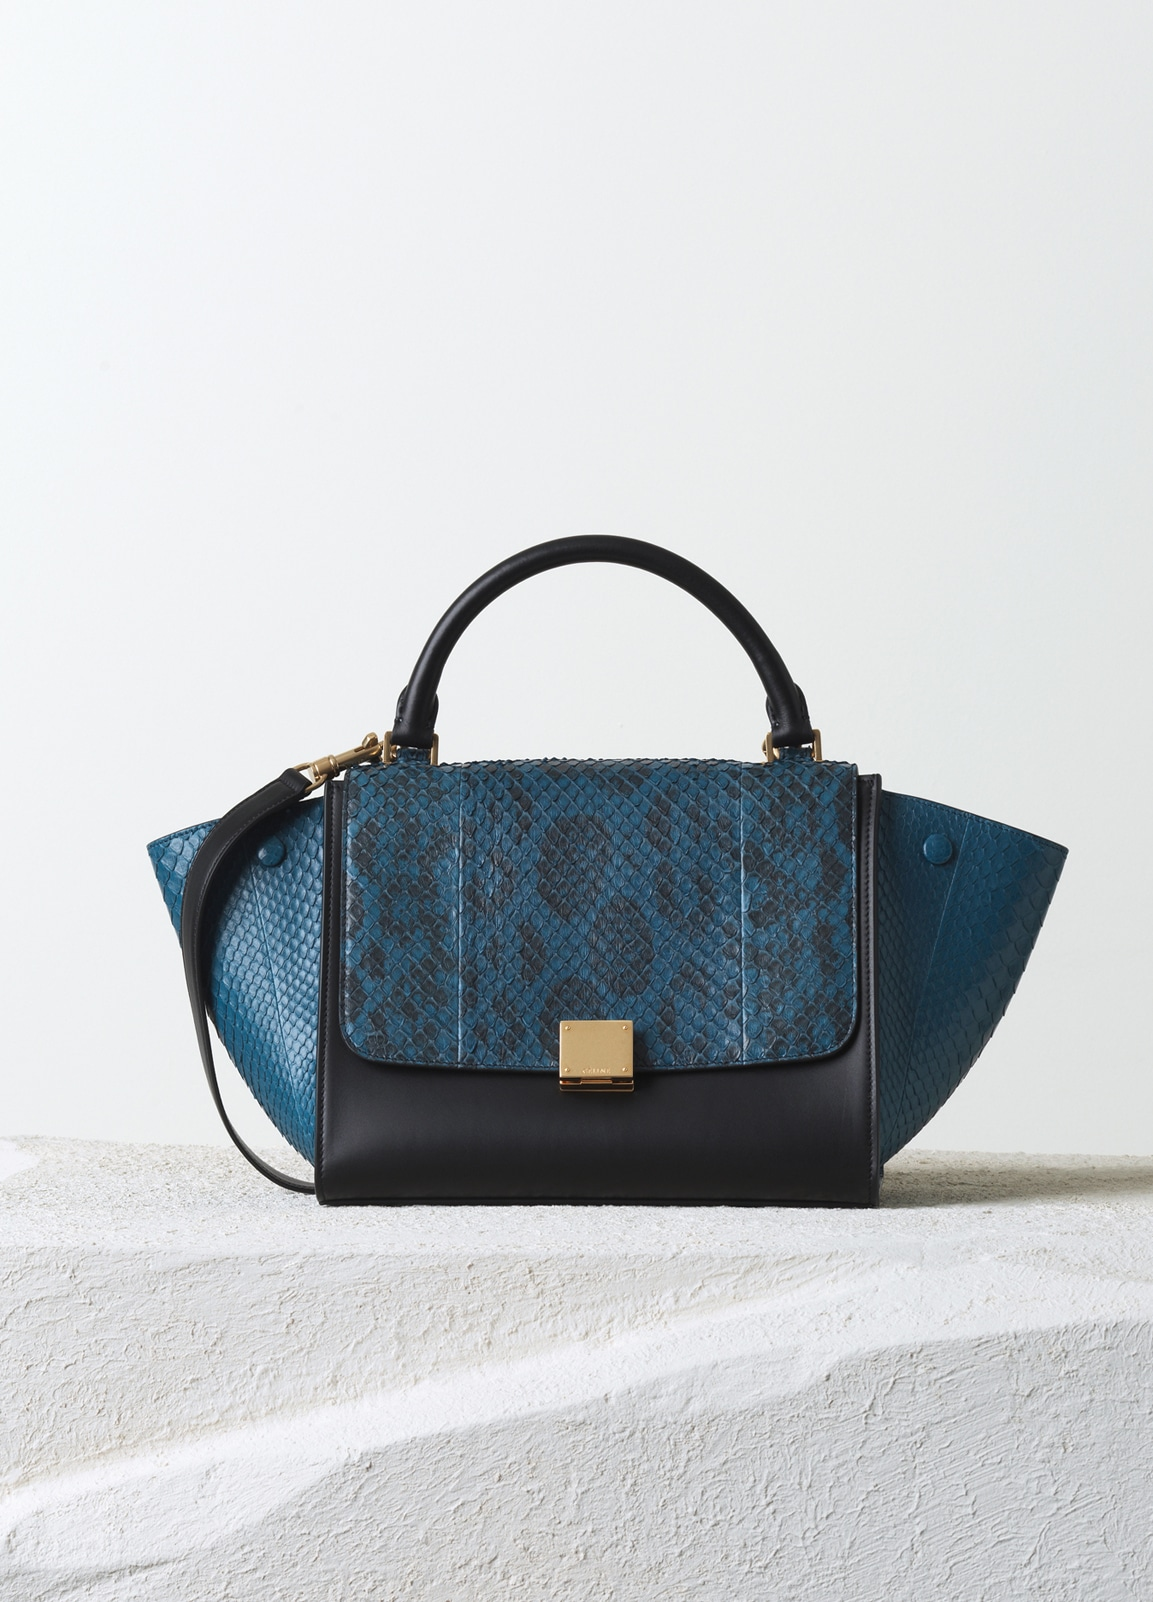 71a53564a1 Celine Metallic Blue Anaconda Python Trapeze Small Bag